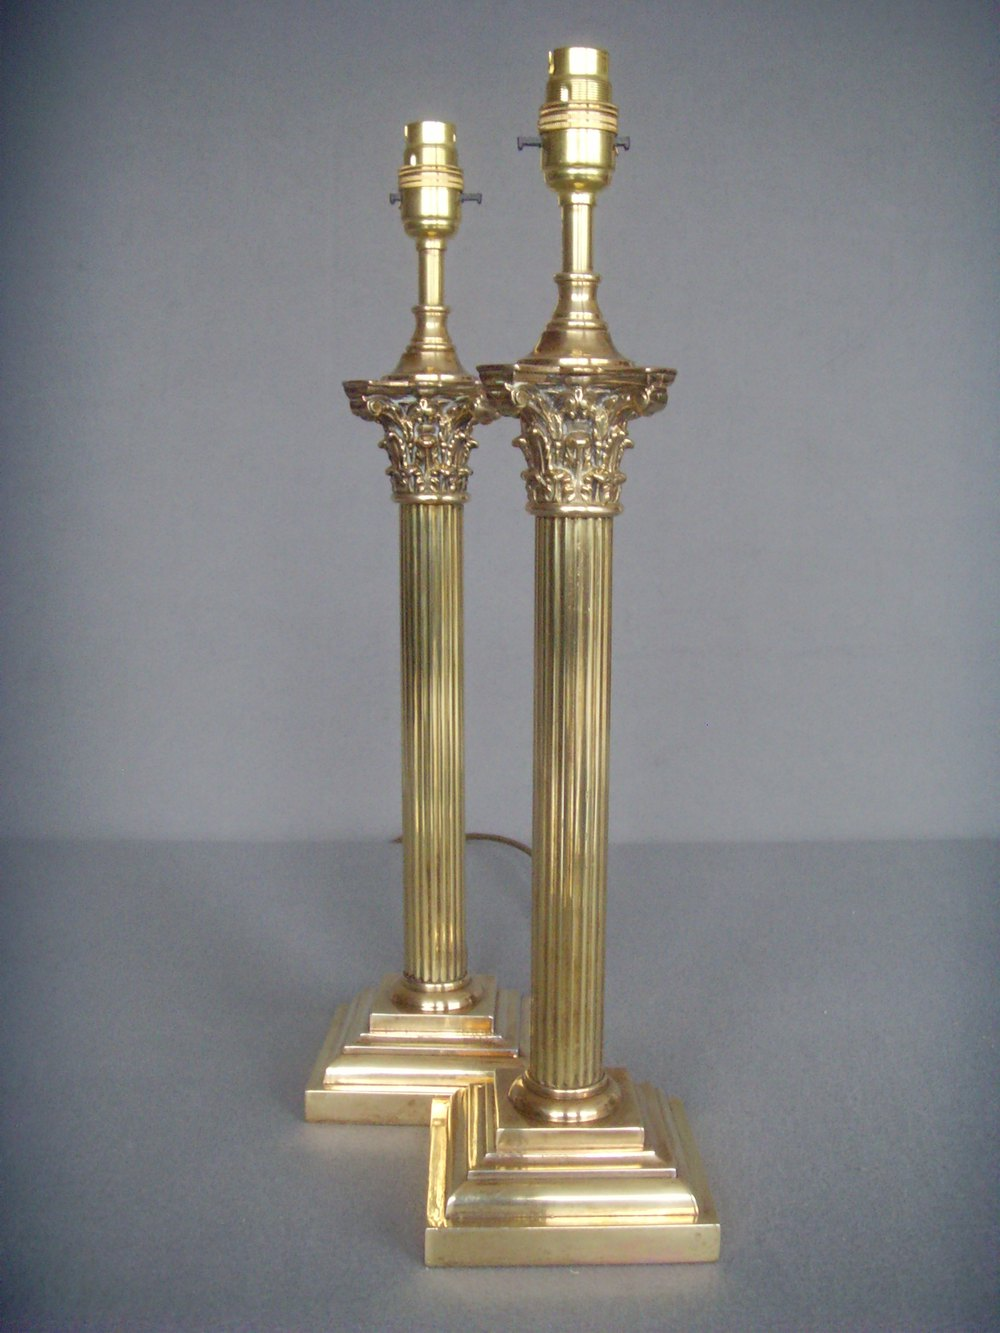 Antiques atlas pr tall brass corinthian column table lamps pr tall brass corinthian column table lamps antique lighting table lamps geotapseo Choice Image